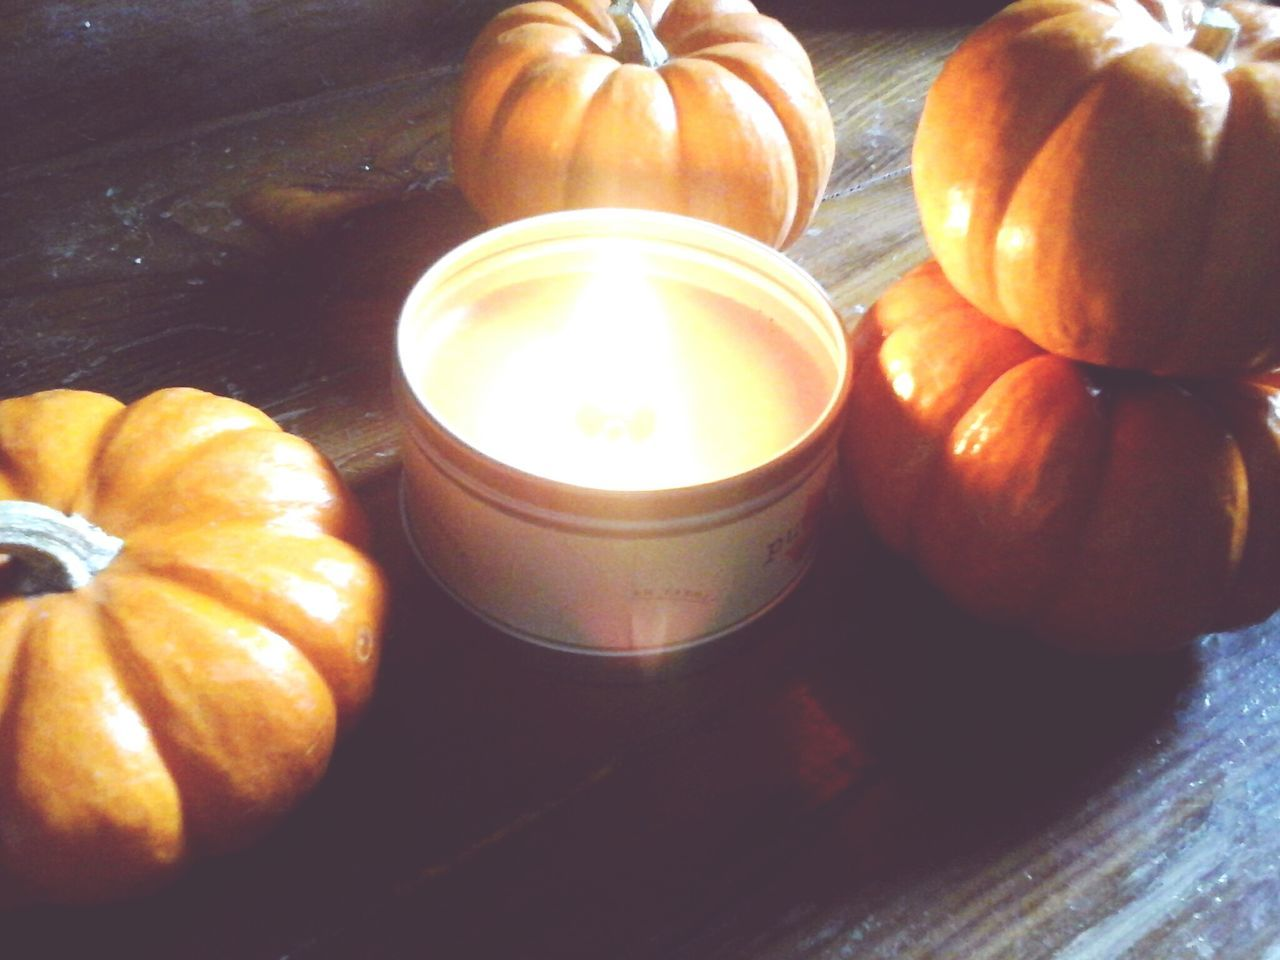 Orange Pumpkins Tiny Pumpkin Pumpkin Bright Orange Orange Pumpkin Still Life Falltime Fall Relaxing Cozy At Home Table Group Of Objects No People Indoors  Close-up Freshness Flame Just Relax Cozytime Indoors  Fall Favorites Orange Hanging Out Candle